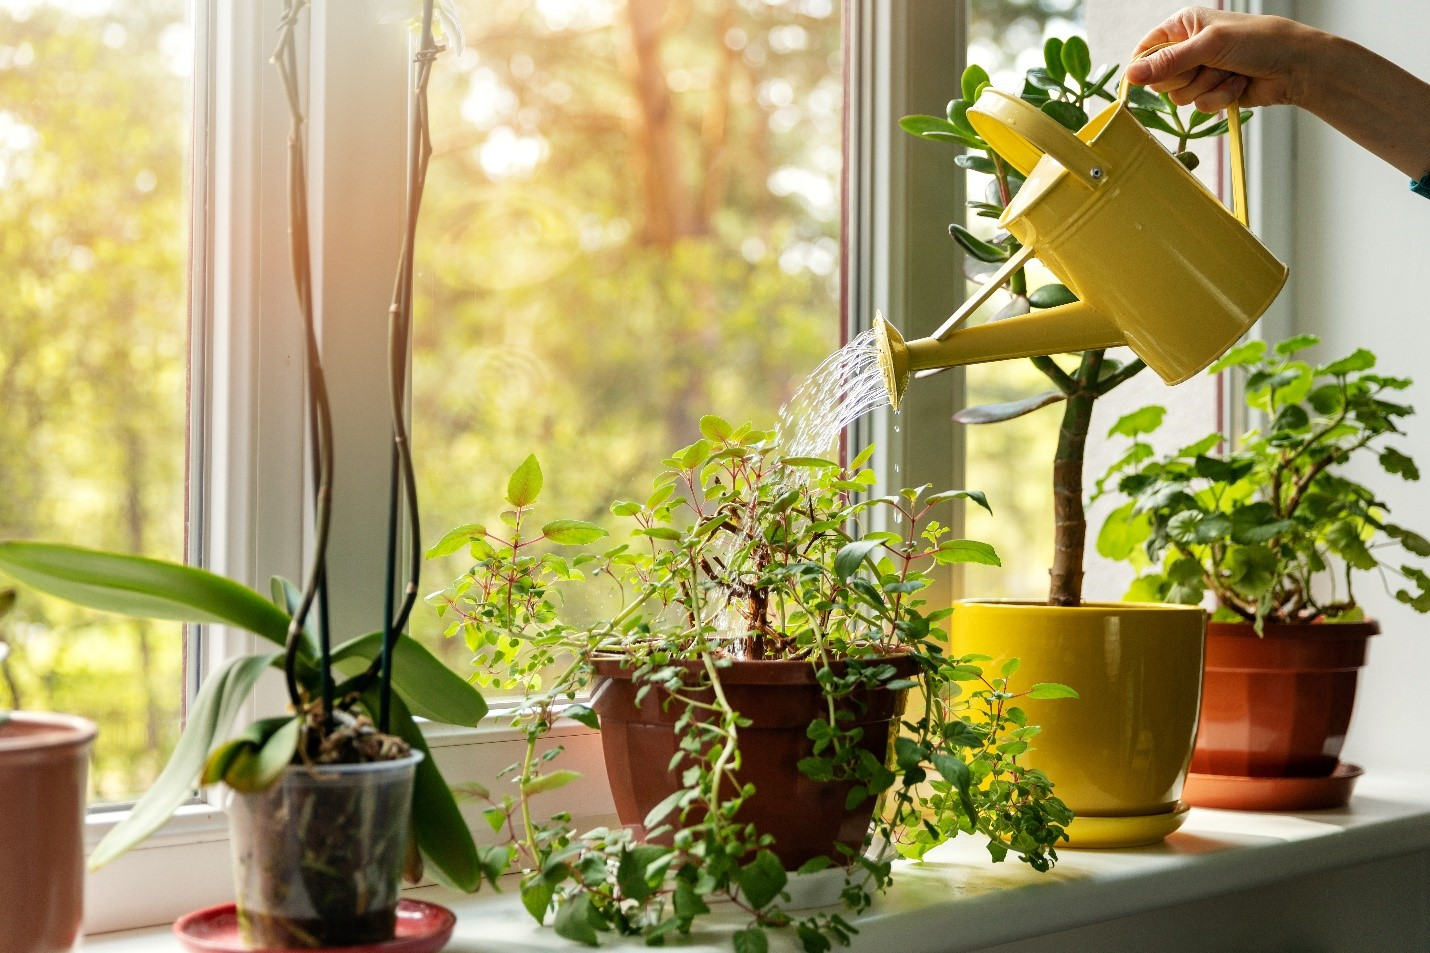 Image of houseplants in a room